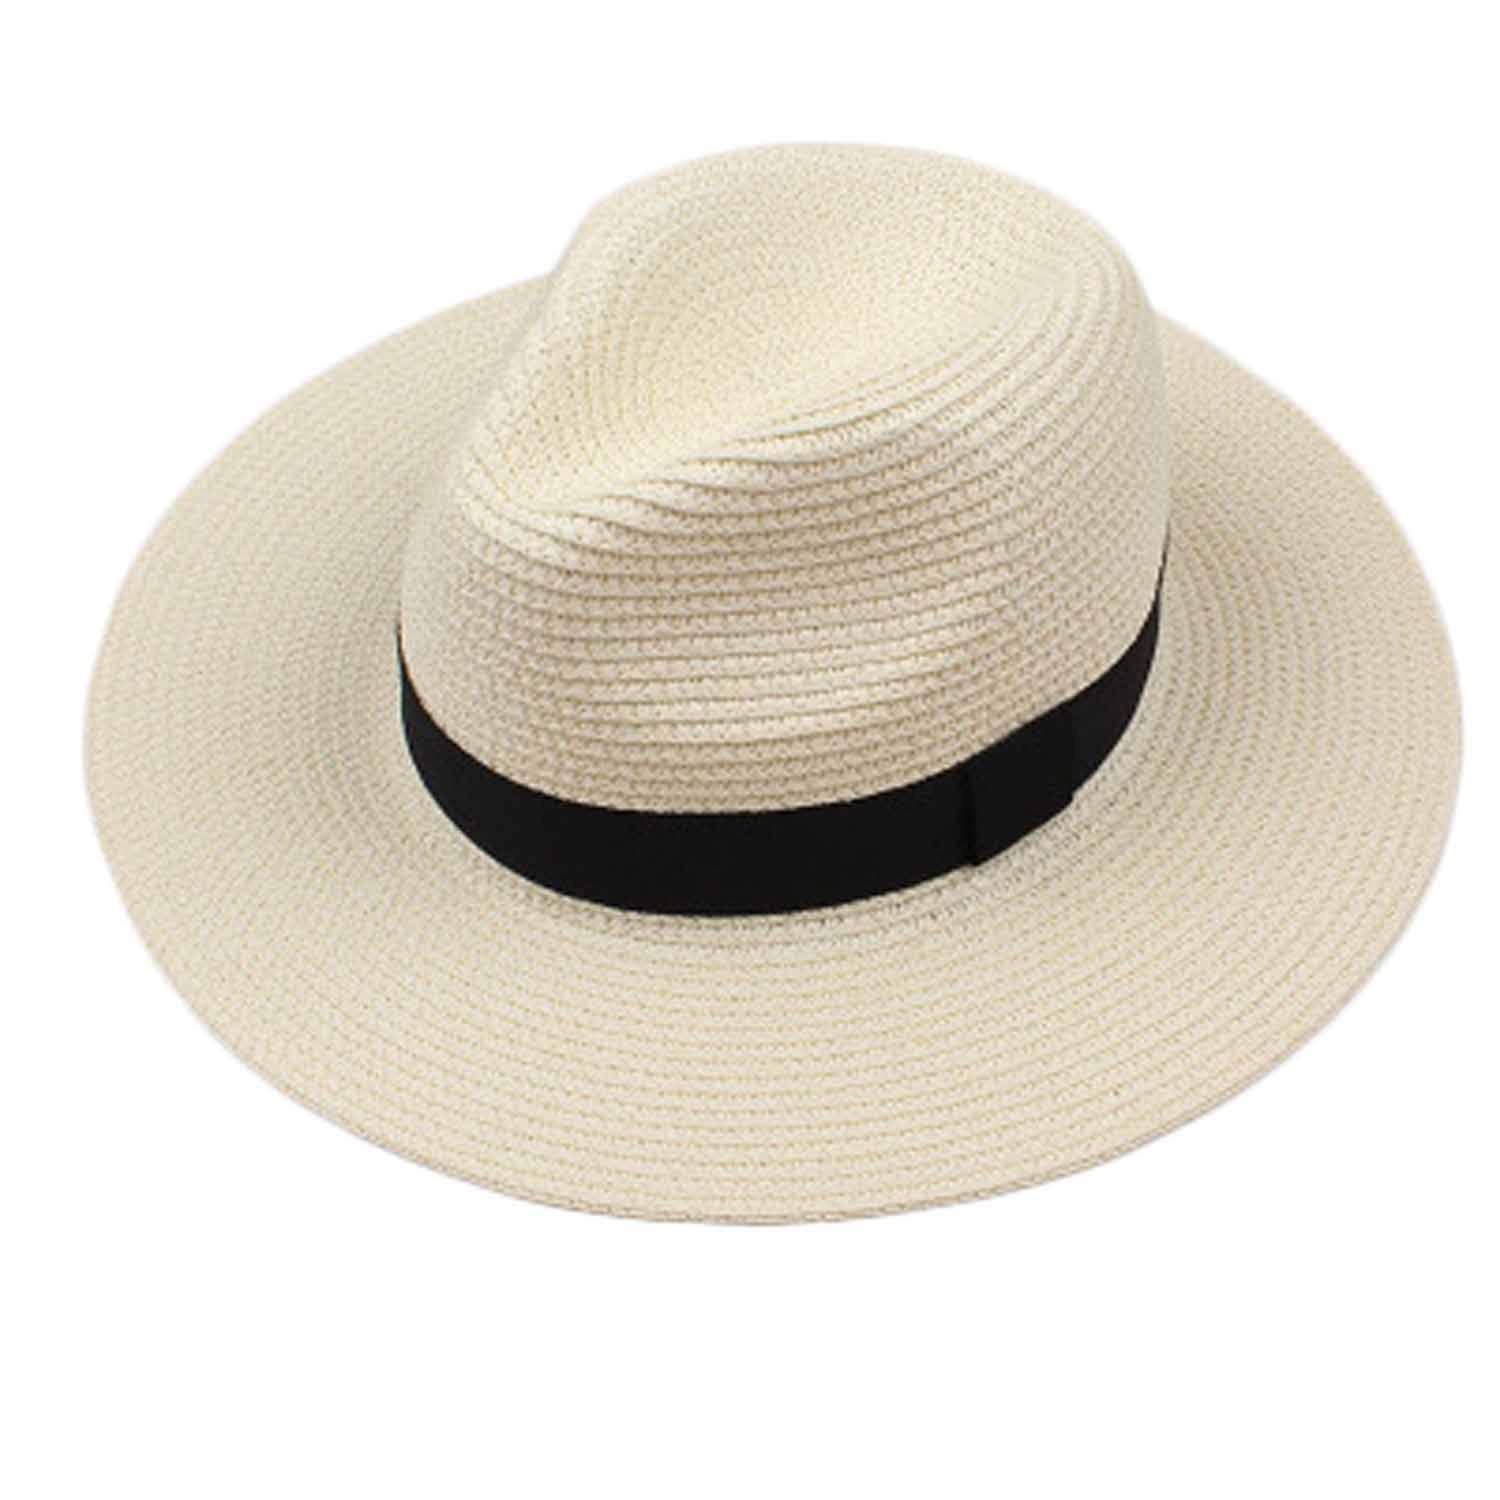 Fashion Summer Straw Mens Sun Hats Trilby Gangster Cap Summer Beach Cap Panama Hat Sombrero Travel Sunhat